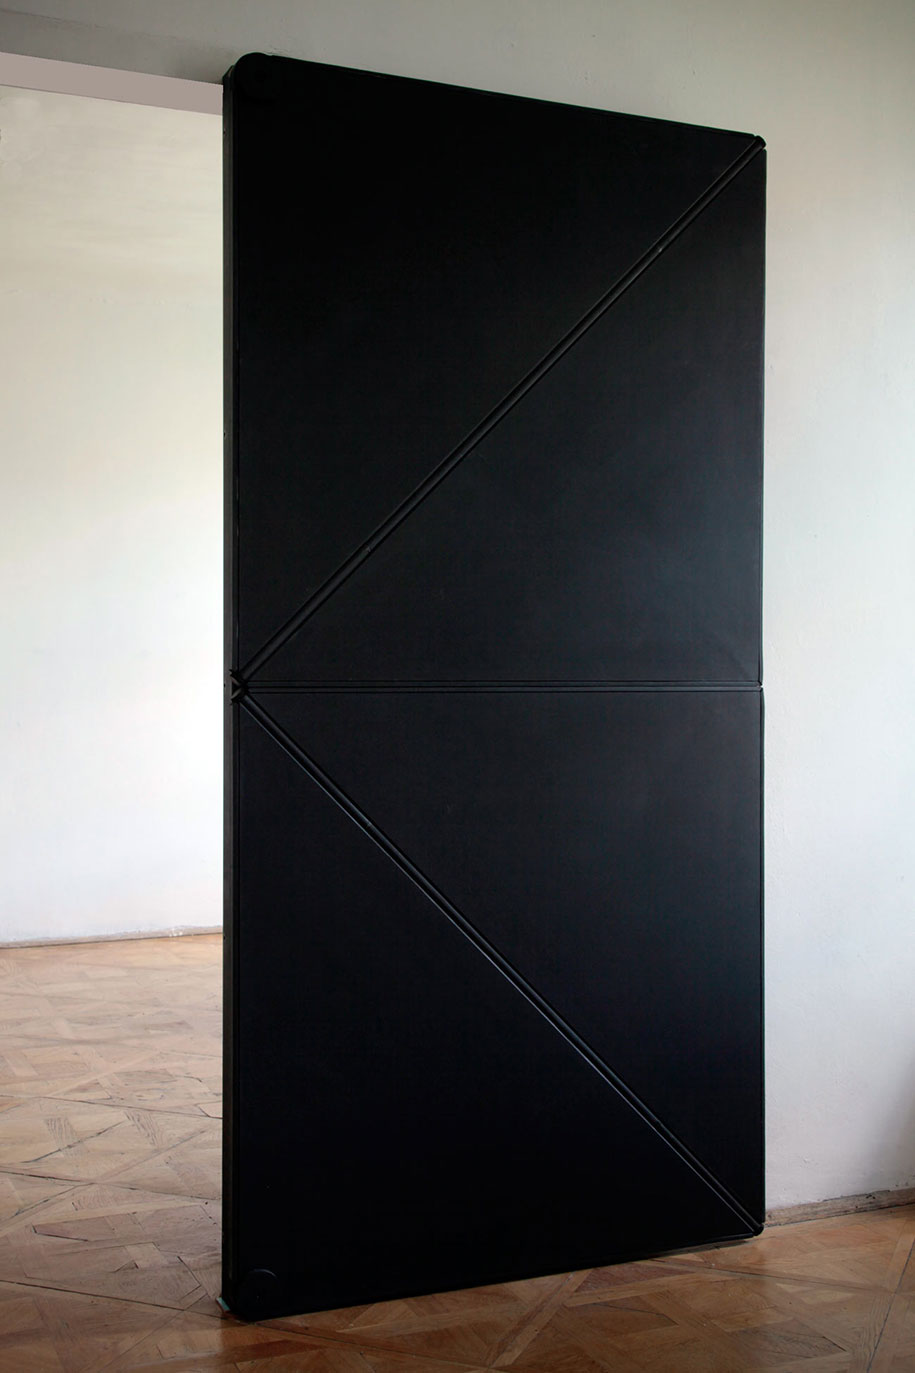 austrian artist reinvents door with innovative 4 folding triangle design. Black Bedroom Furniture Sets. Home Design Ideas